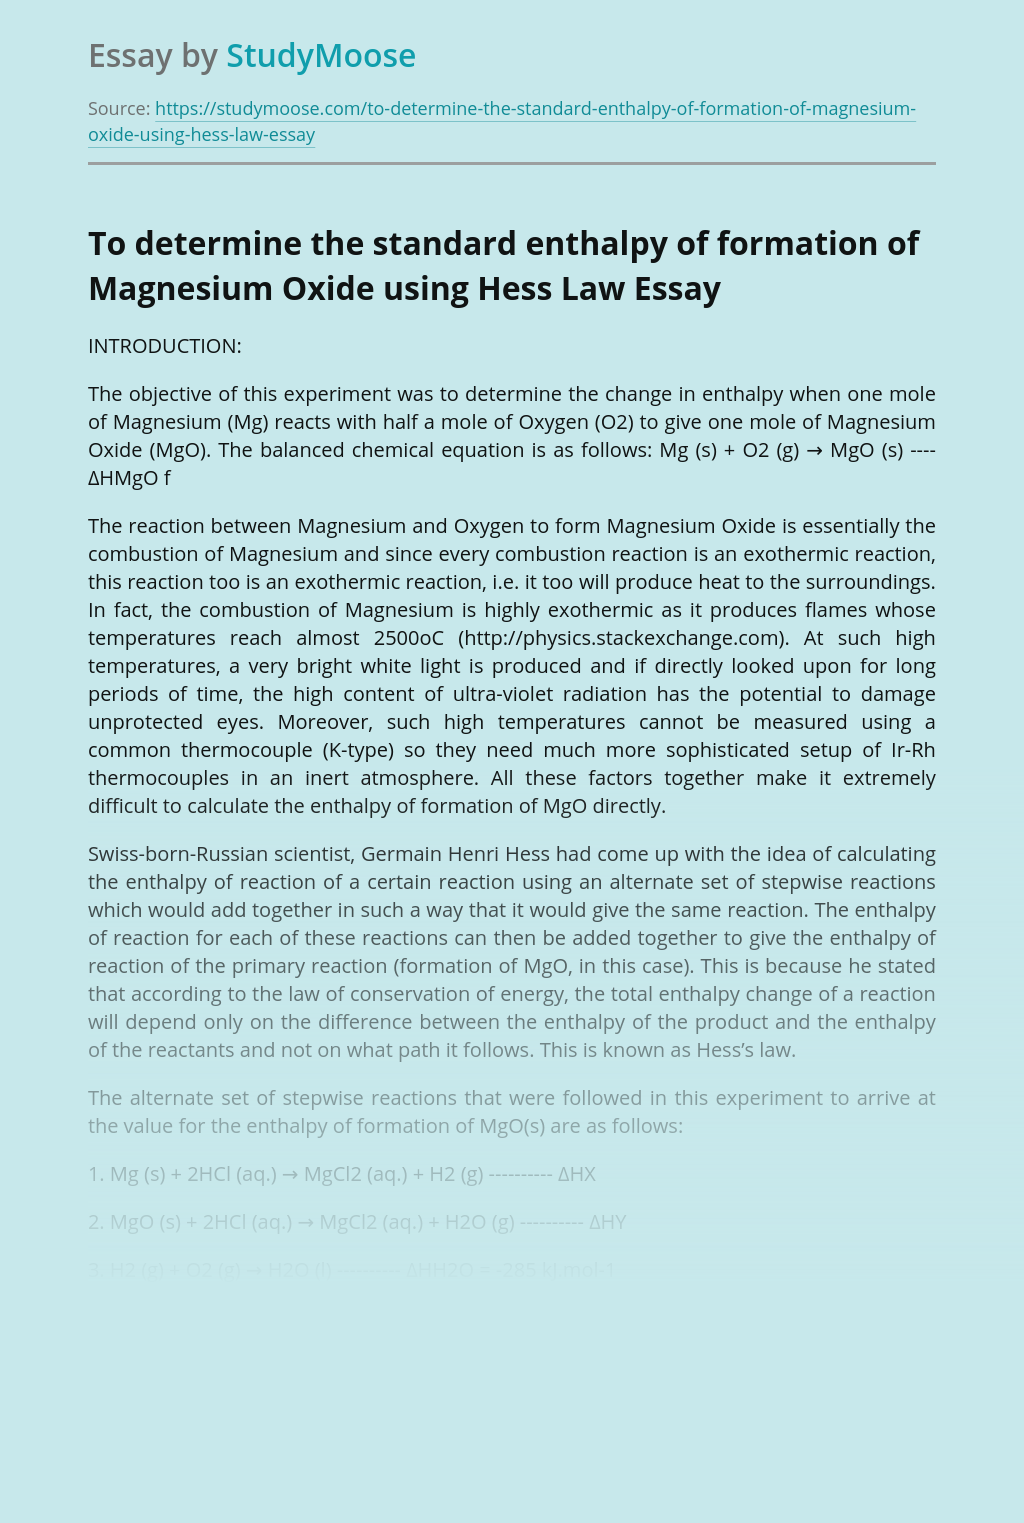 To determine the standard enthalpy of formation of Magnesium Oxide using Hess Law